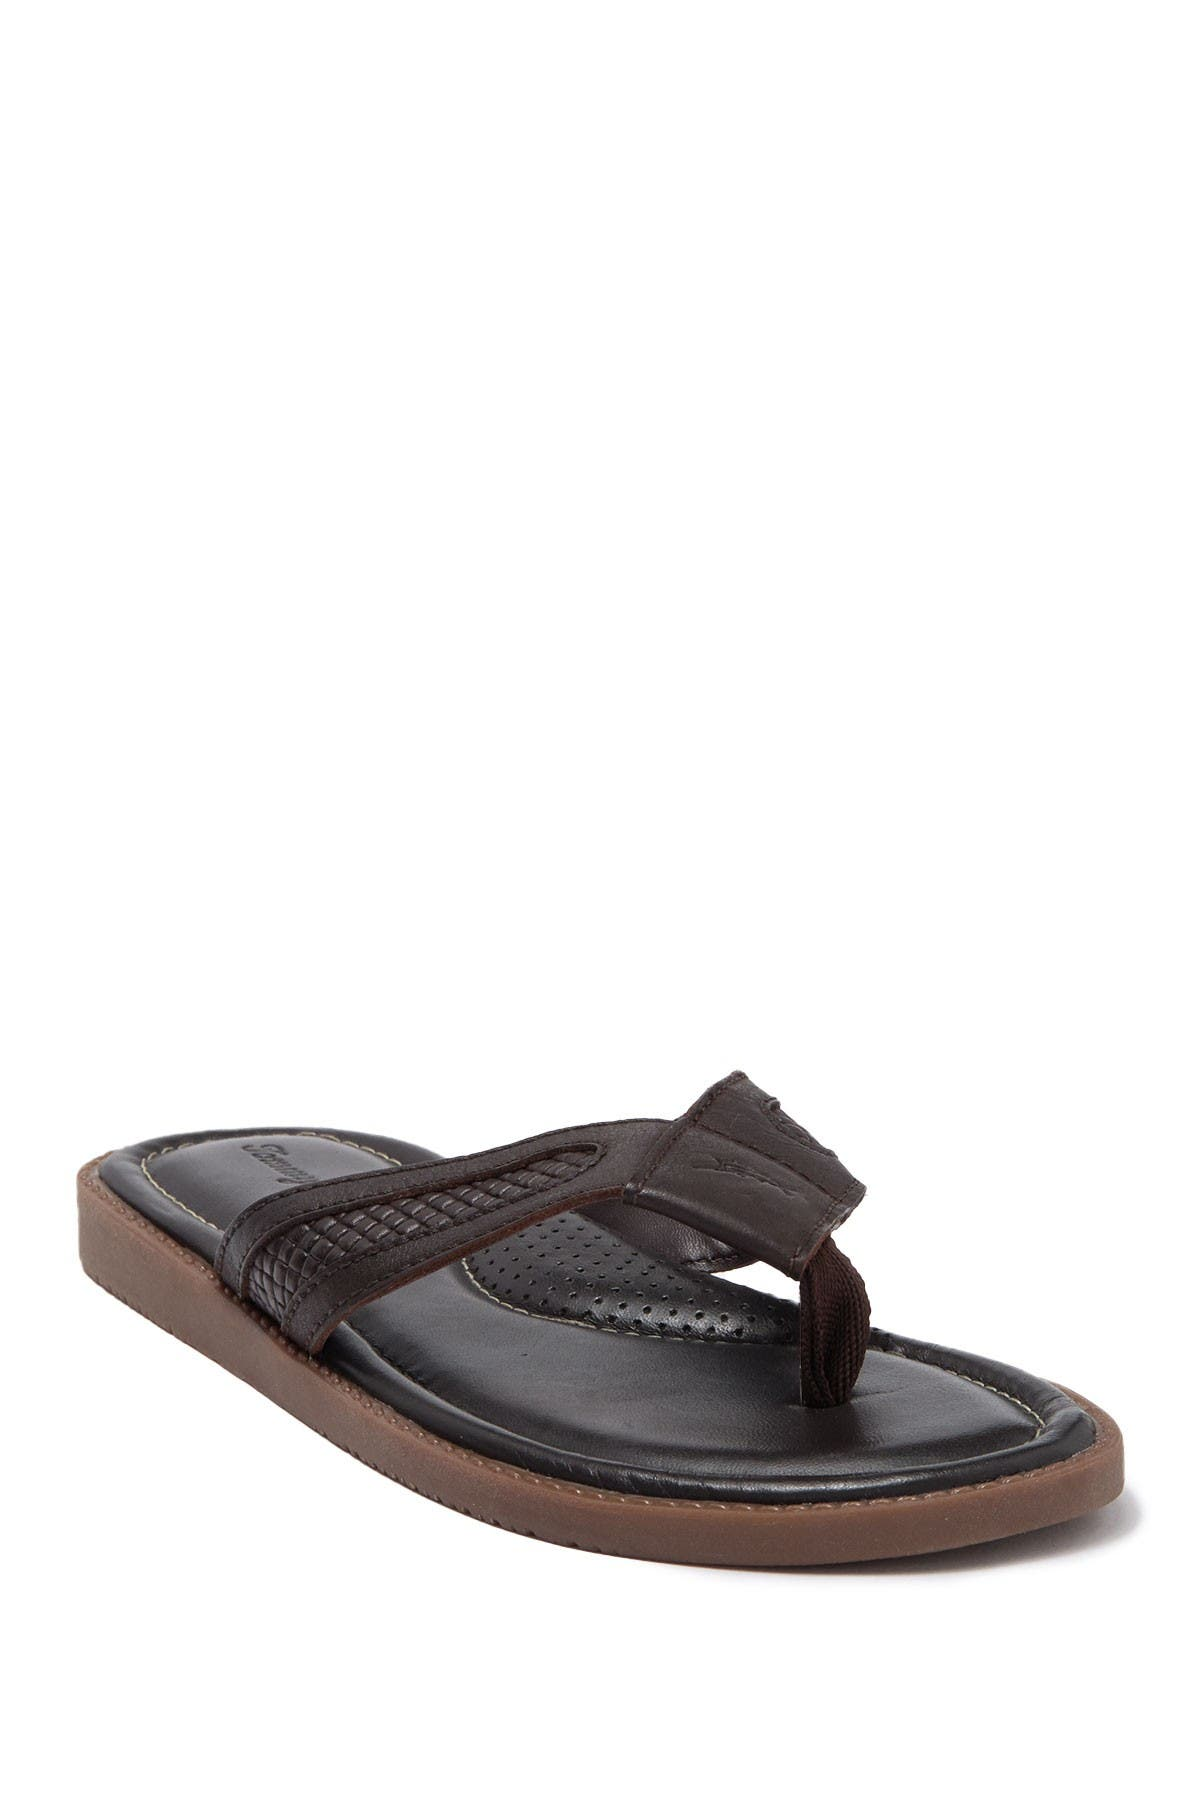 Image of Tommy Bahama Asher Leather Flip Flop